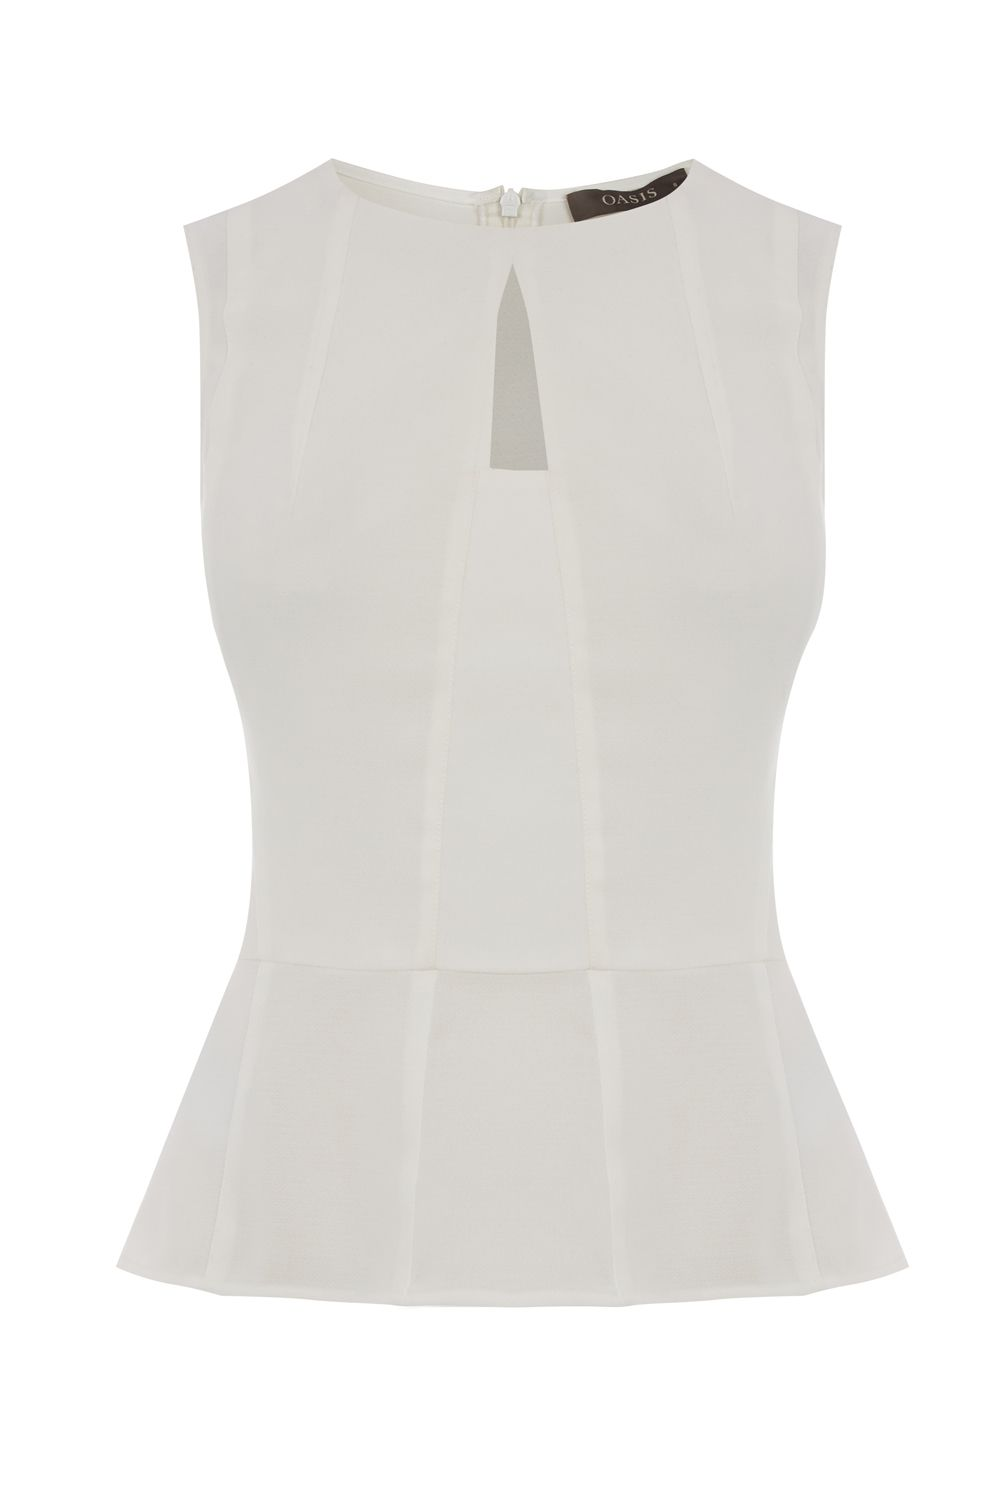 Oasis Peplum Top, Off White